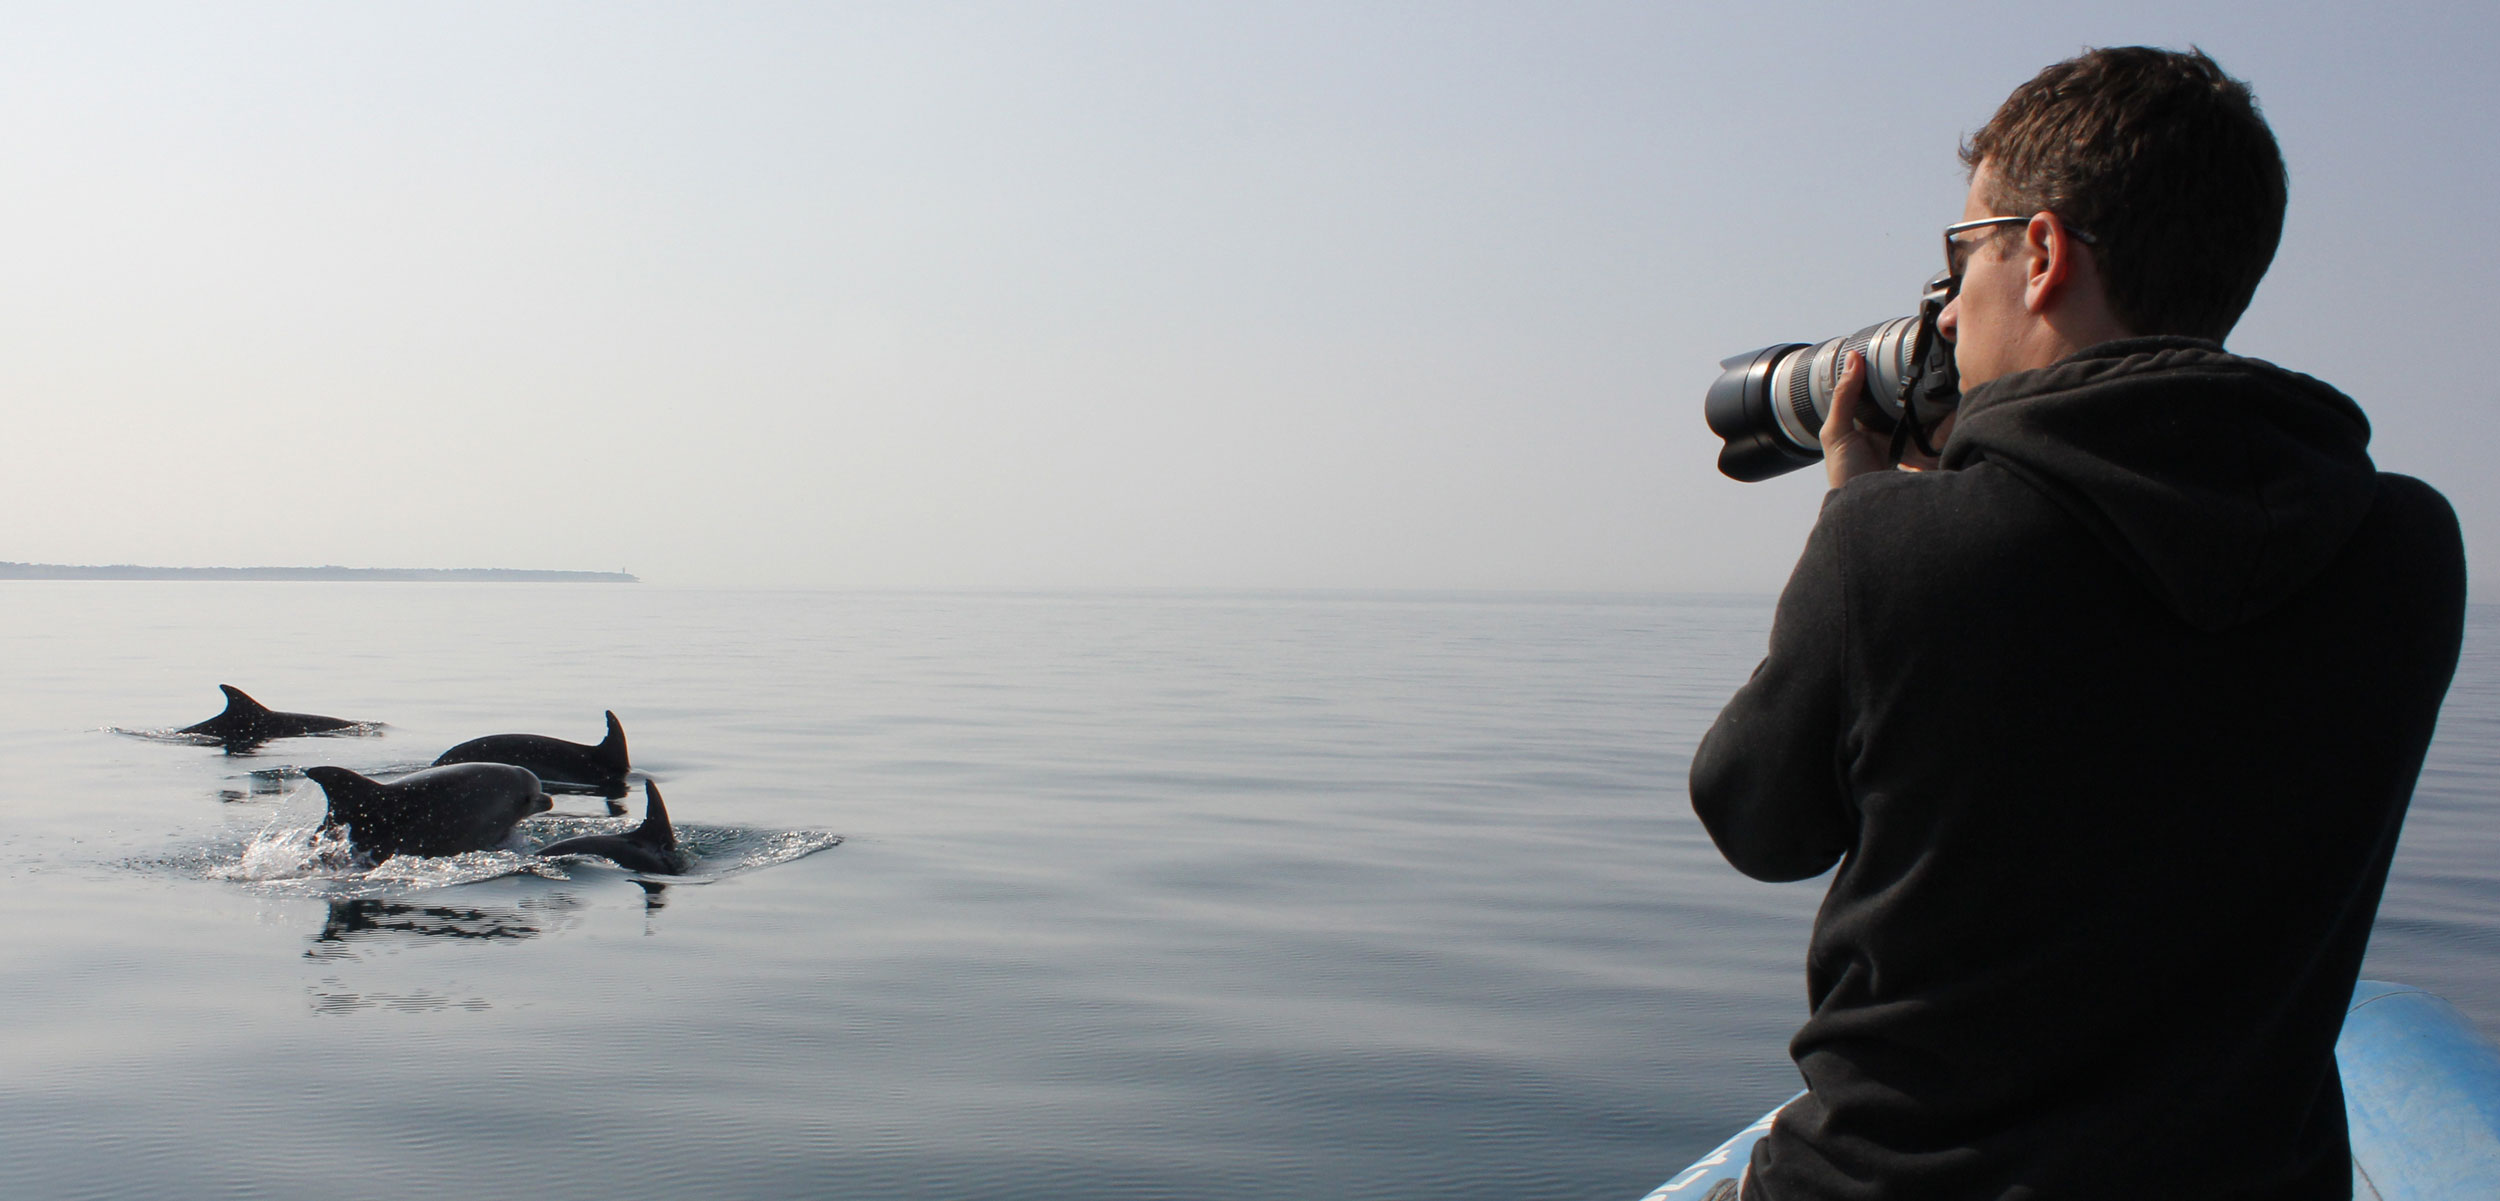 Researcher photographs bottlenose dolphins